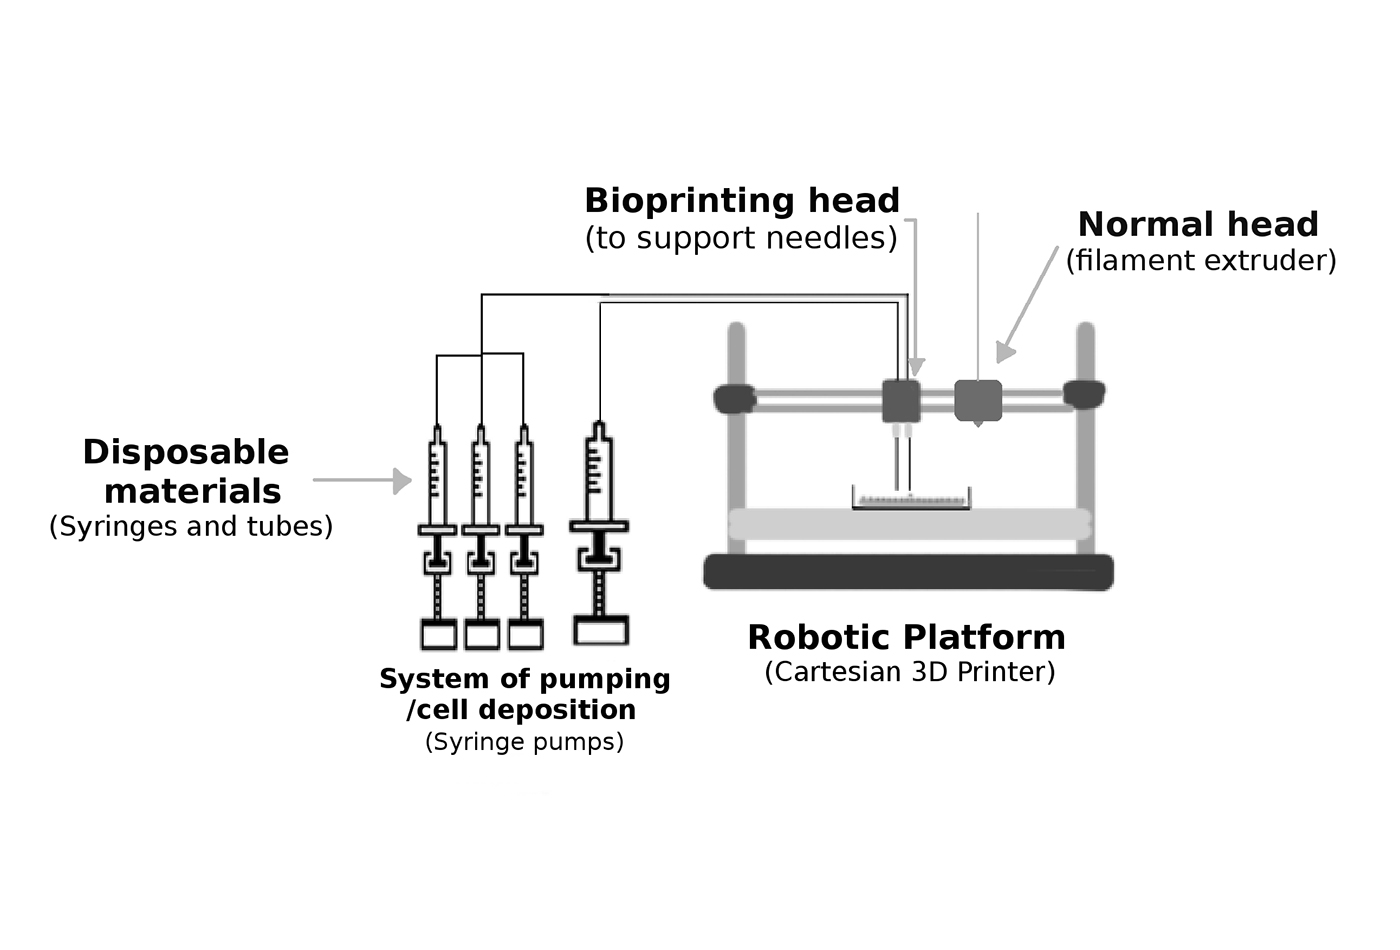 Basic elements of a bioprinter. Image reused with modifications.